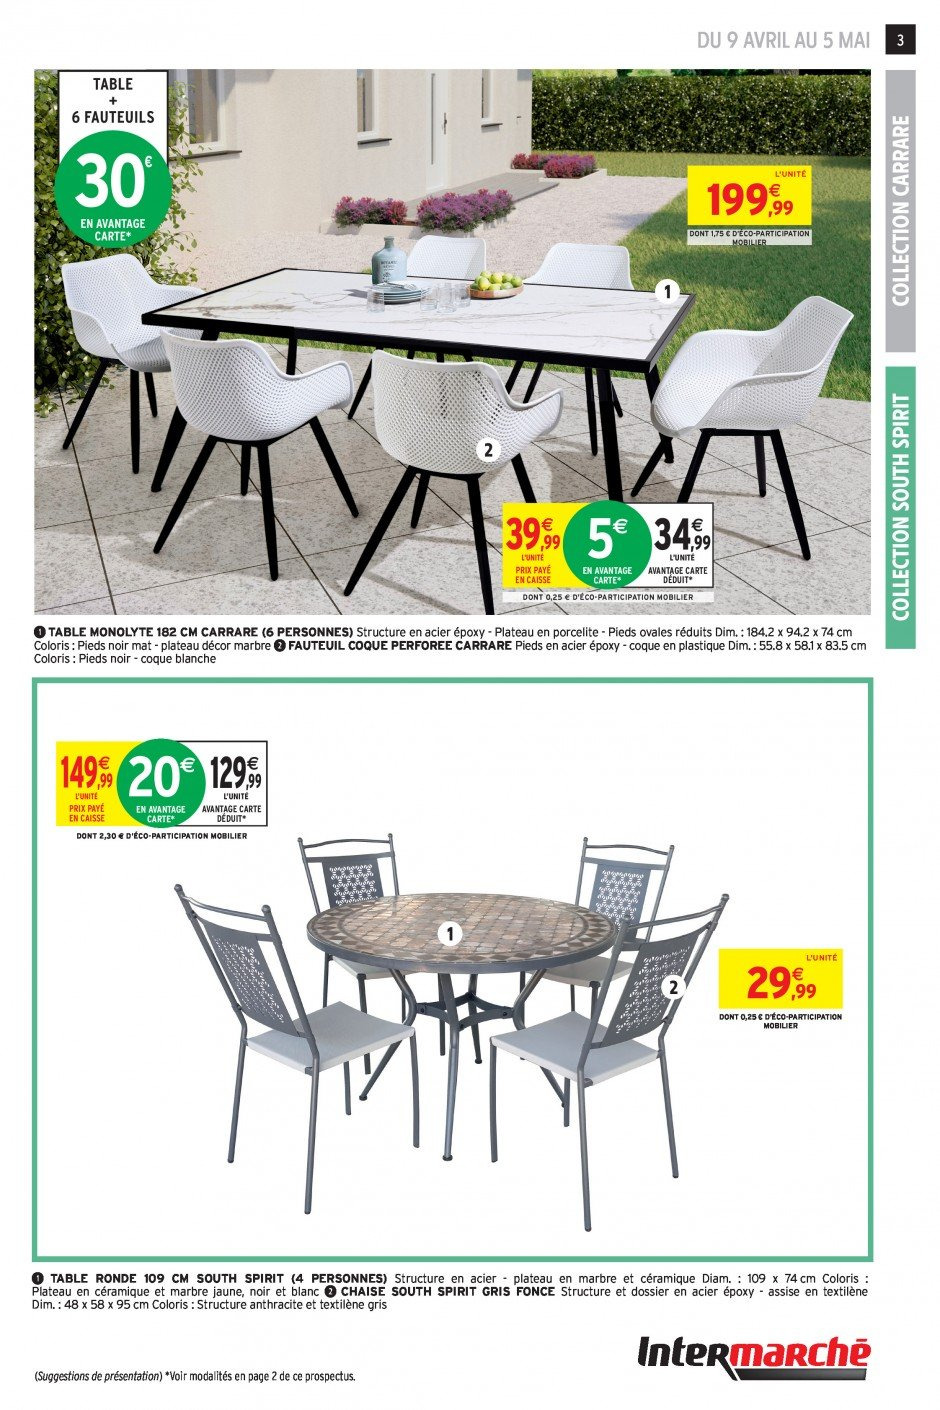 Catalogue Intermarche 09 04 2019 05 05 2019 Page 3 Vos Promos